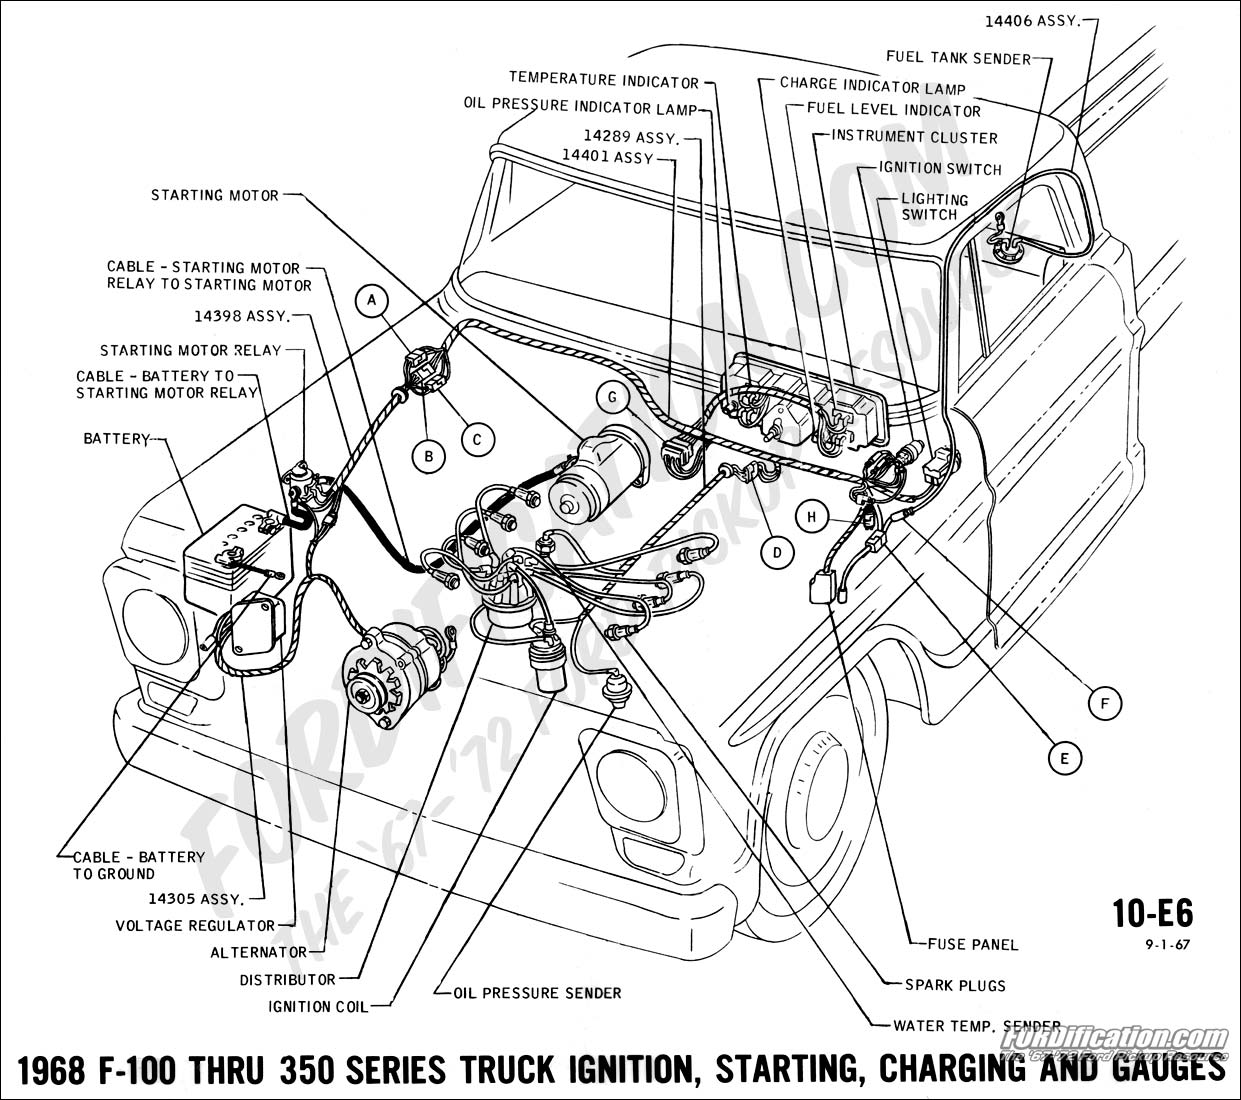 1973 Ford F250 Ignition Switch Wiring Diagram Wire Data Schema F 250 Truck Technical Drawings And Schematics Section H 1972